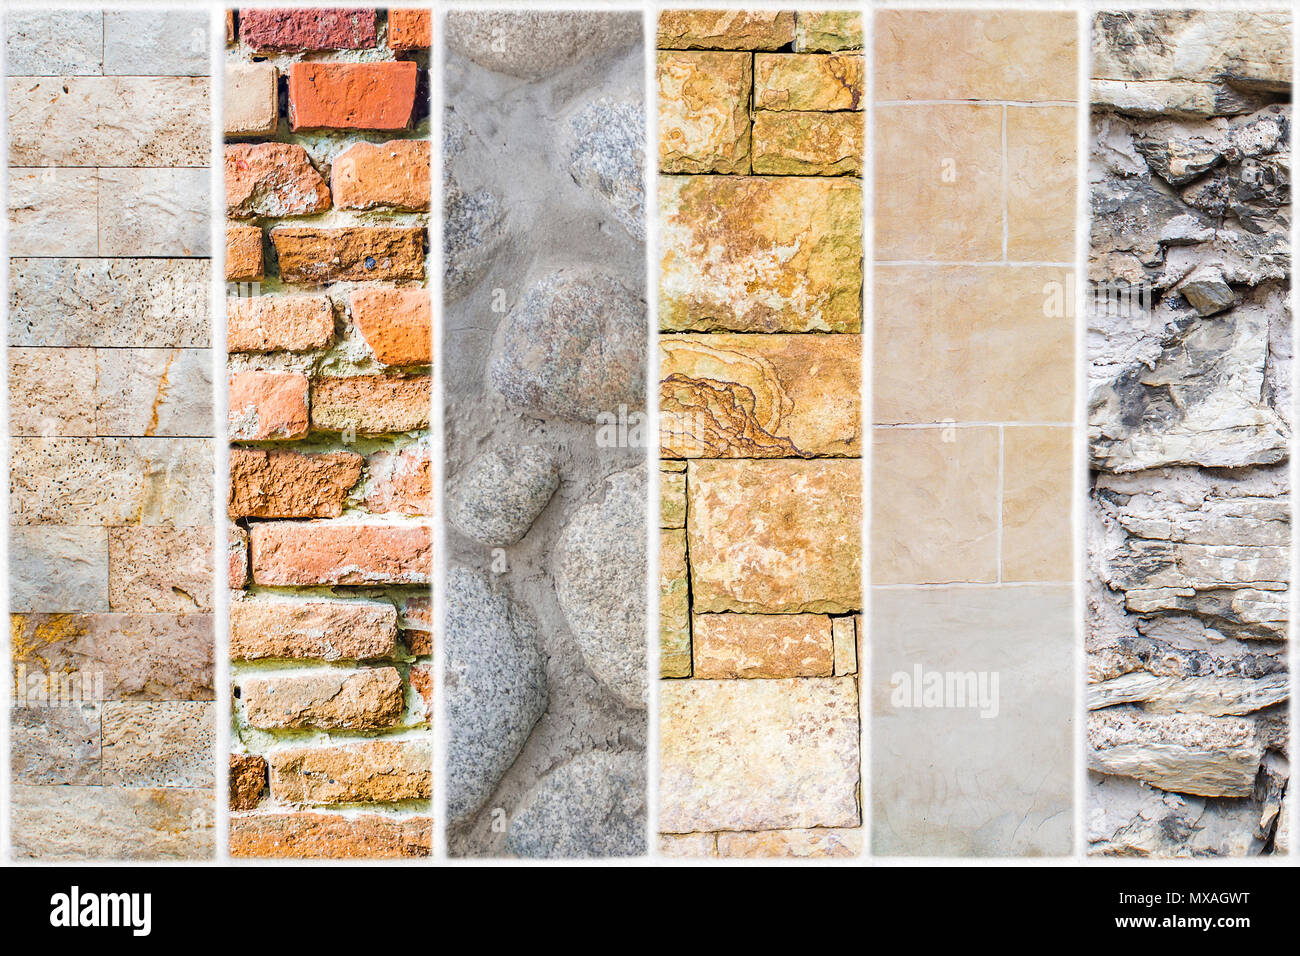 White Ceramic Tile With 24 Squares In Rectangular Form Stock Photo